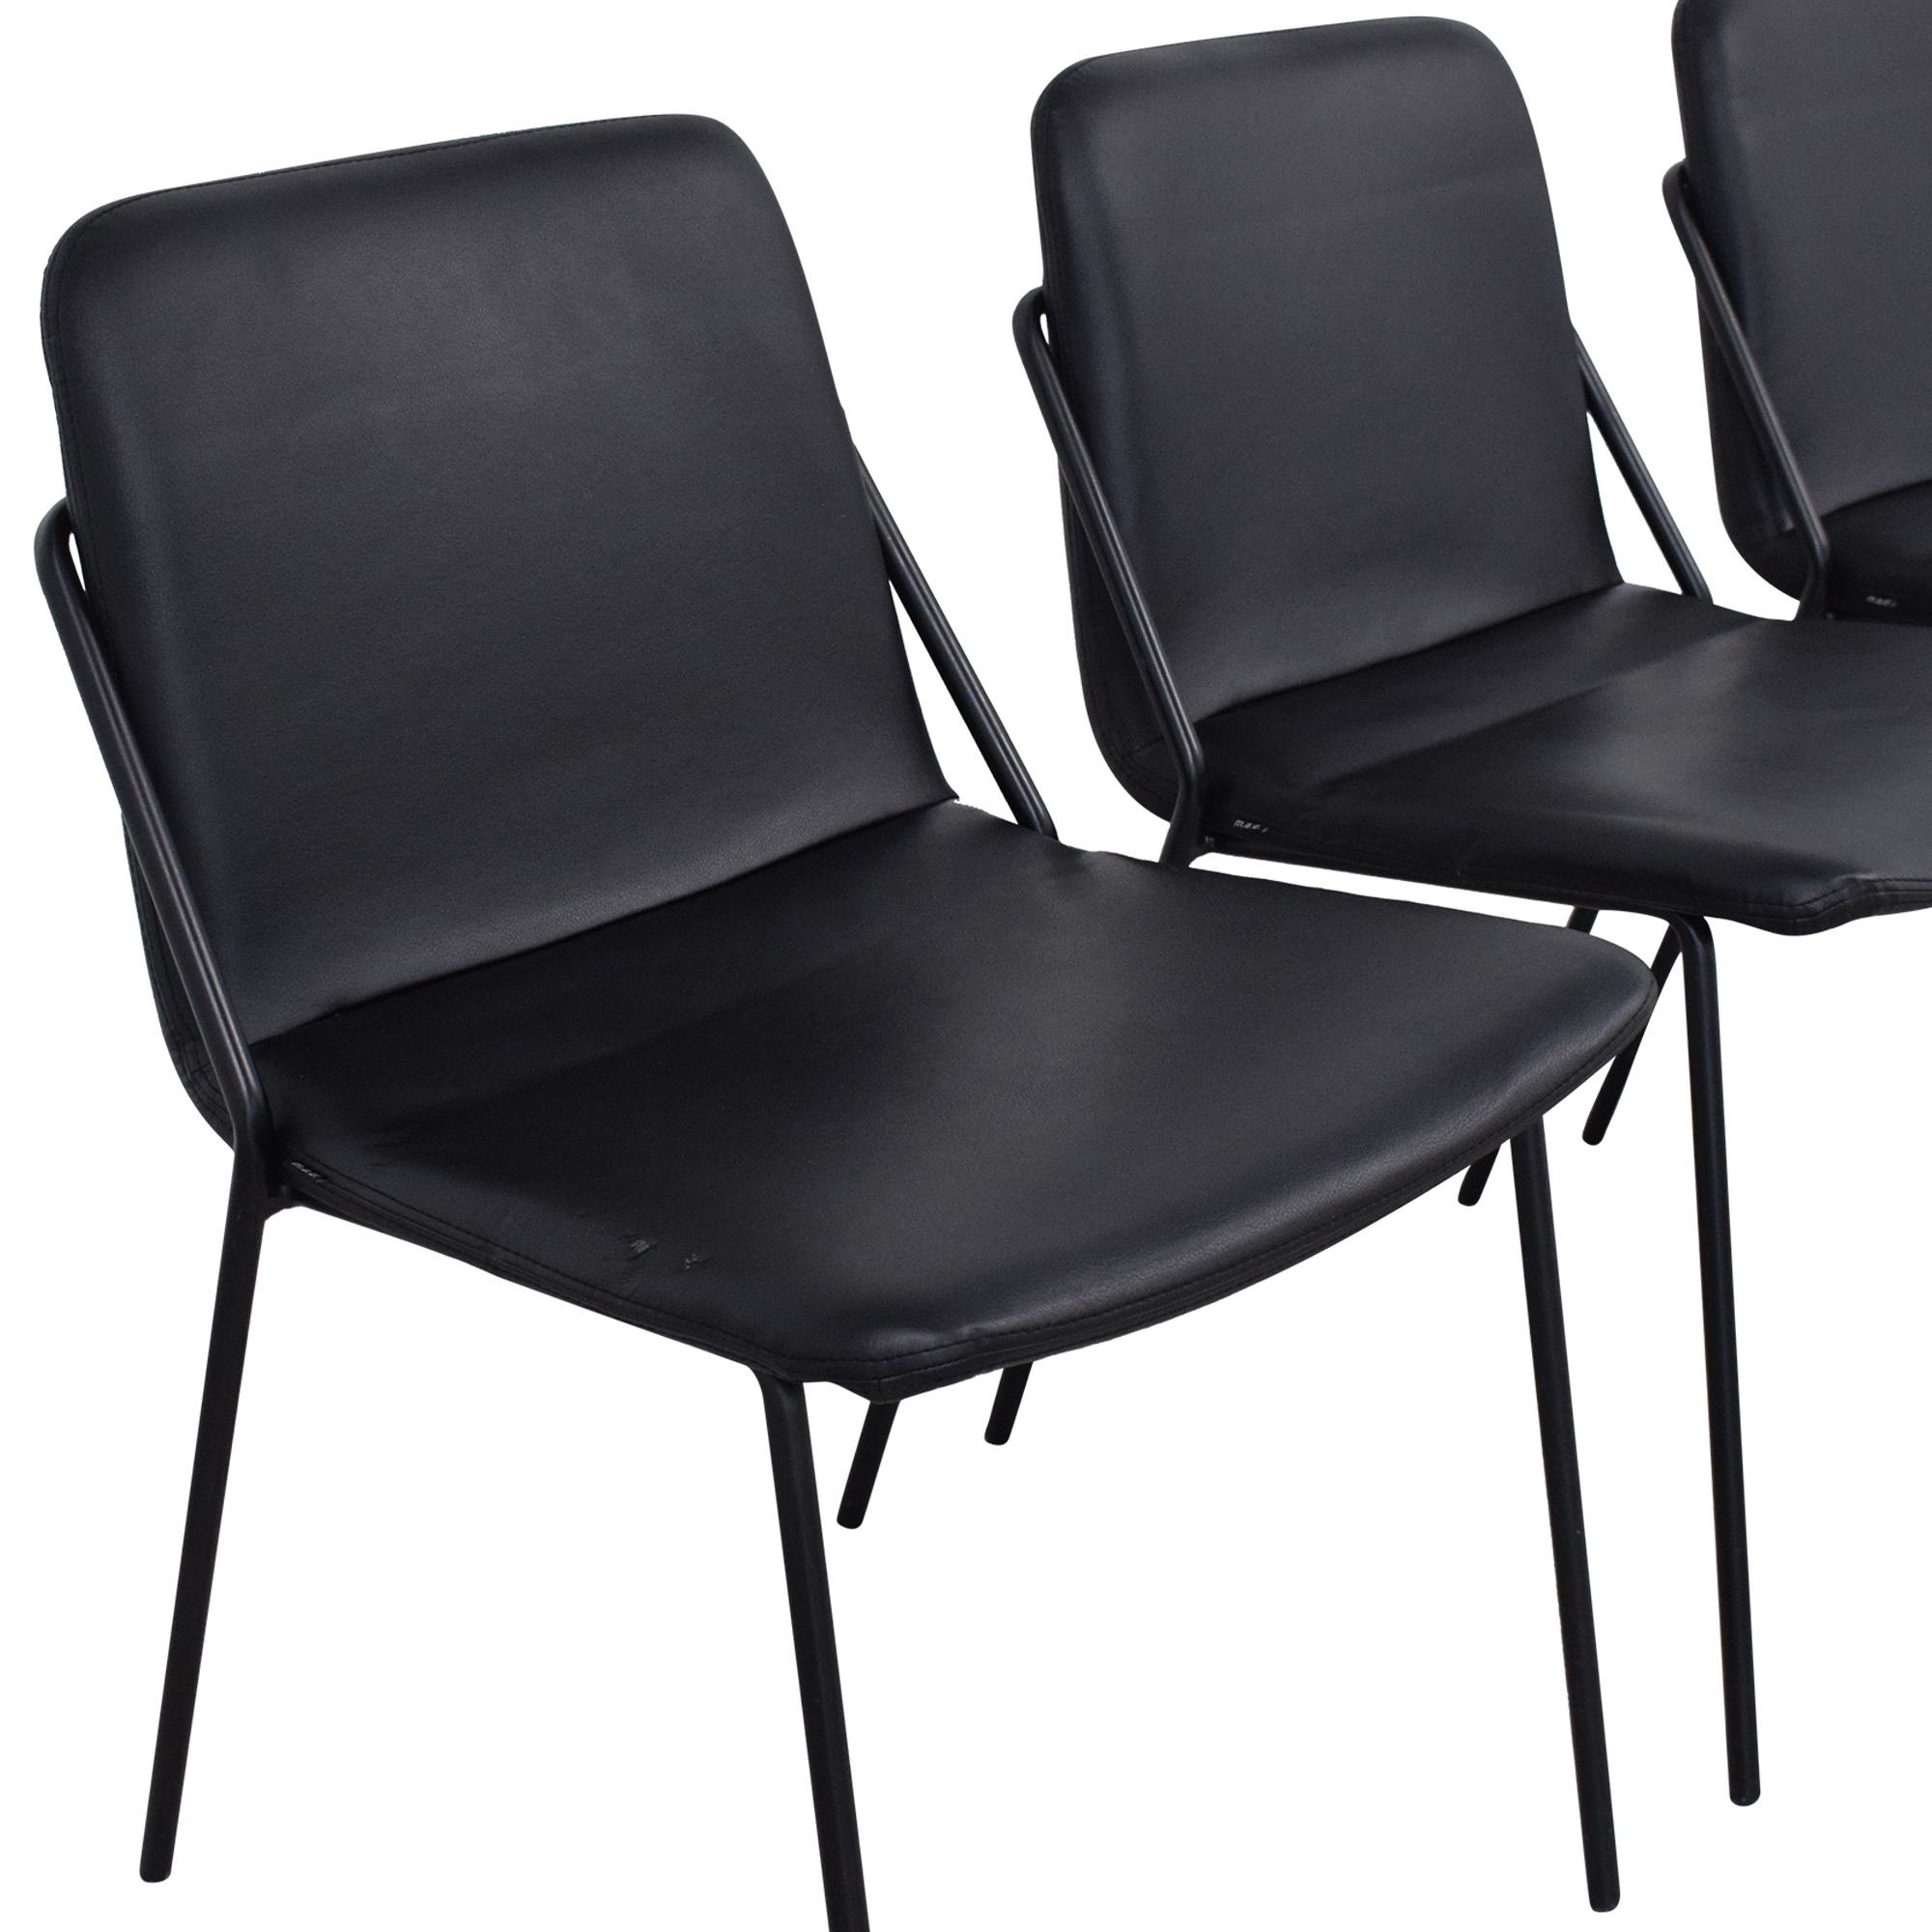 m.a.d. m.a.d. Sling Upholstered Leather Chairs